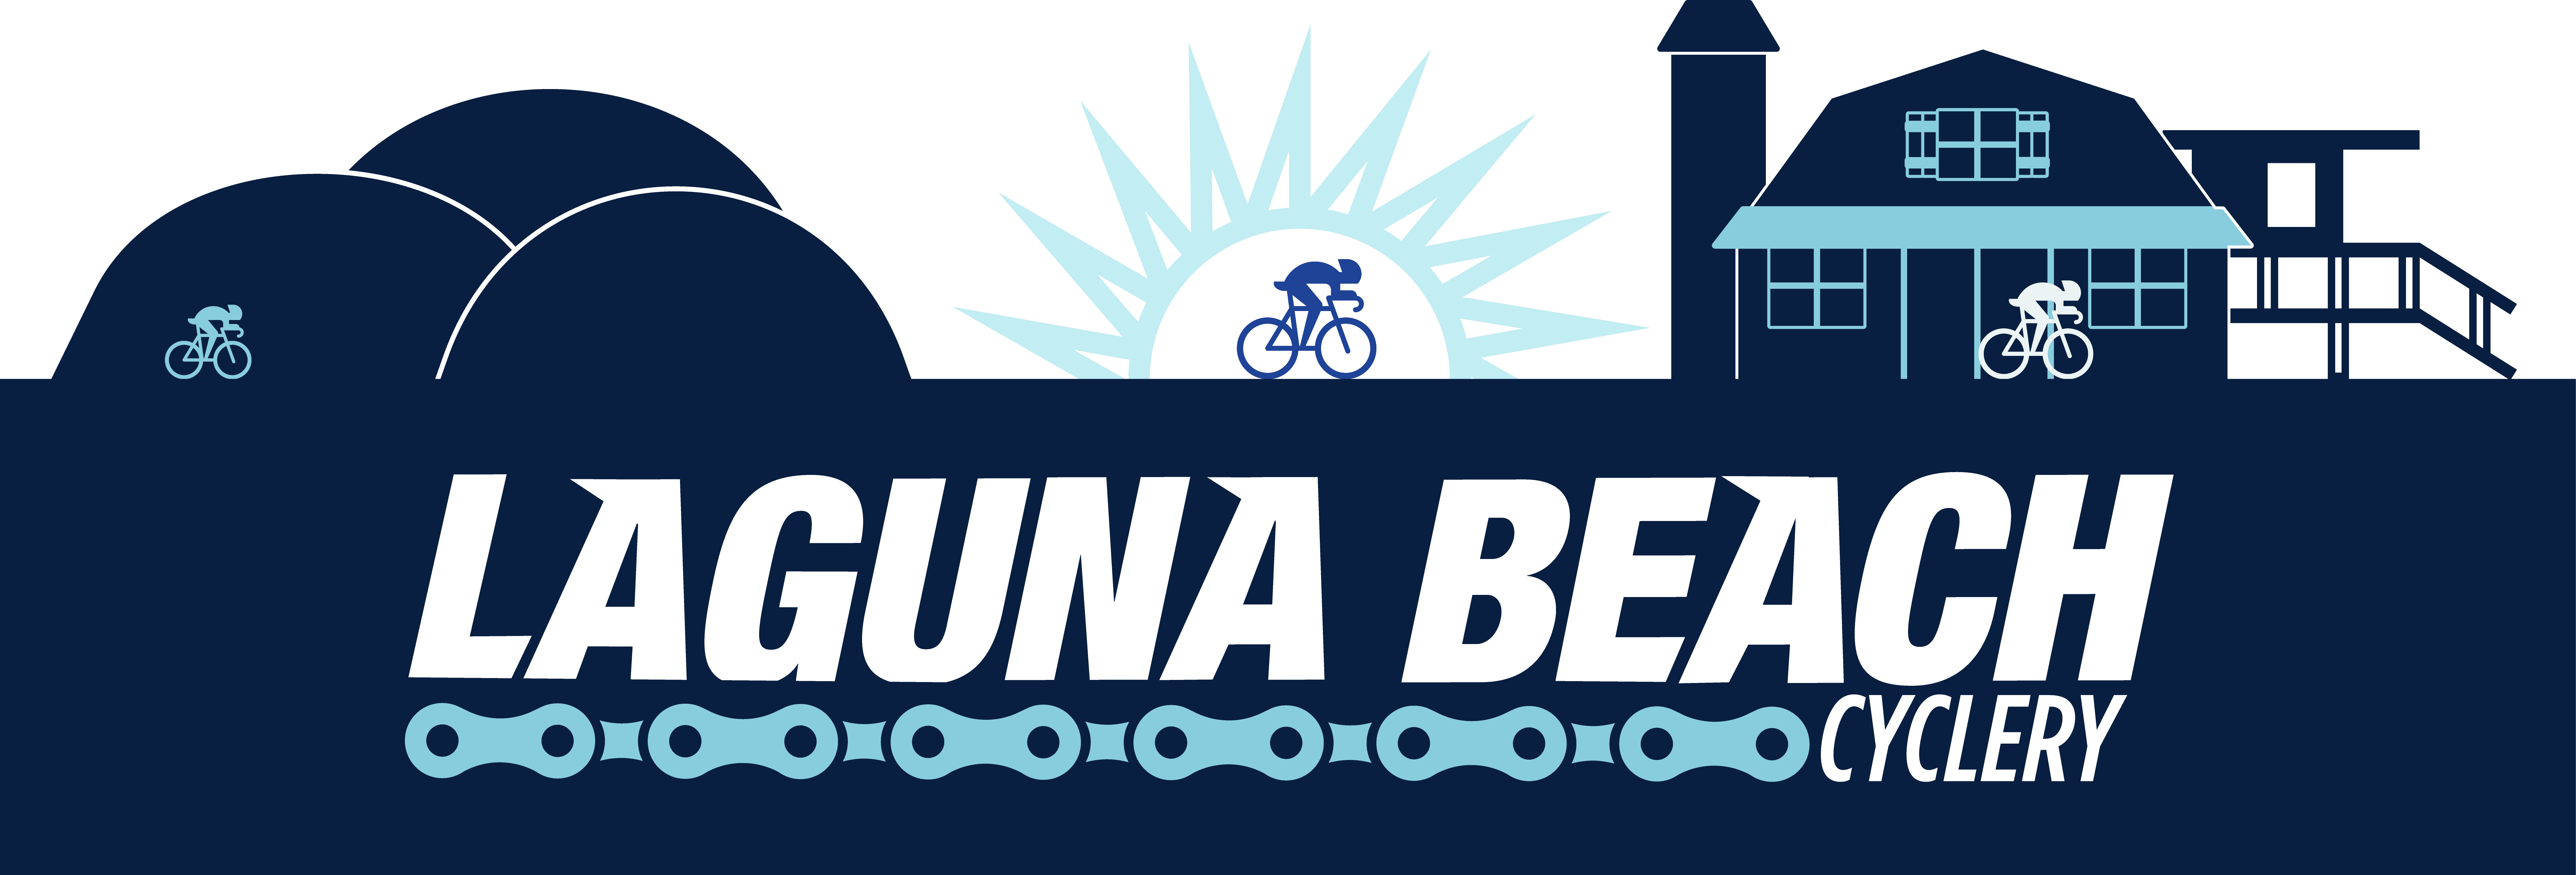 Laguna Beach Cyclery Home Page